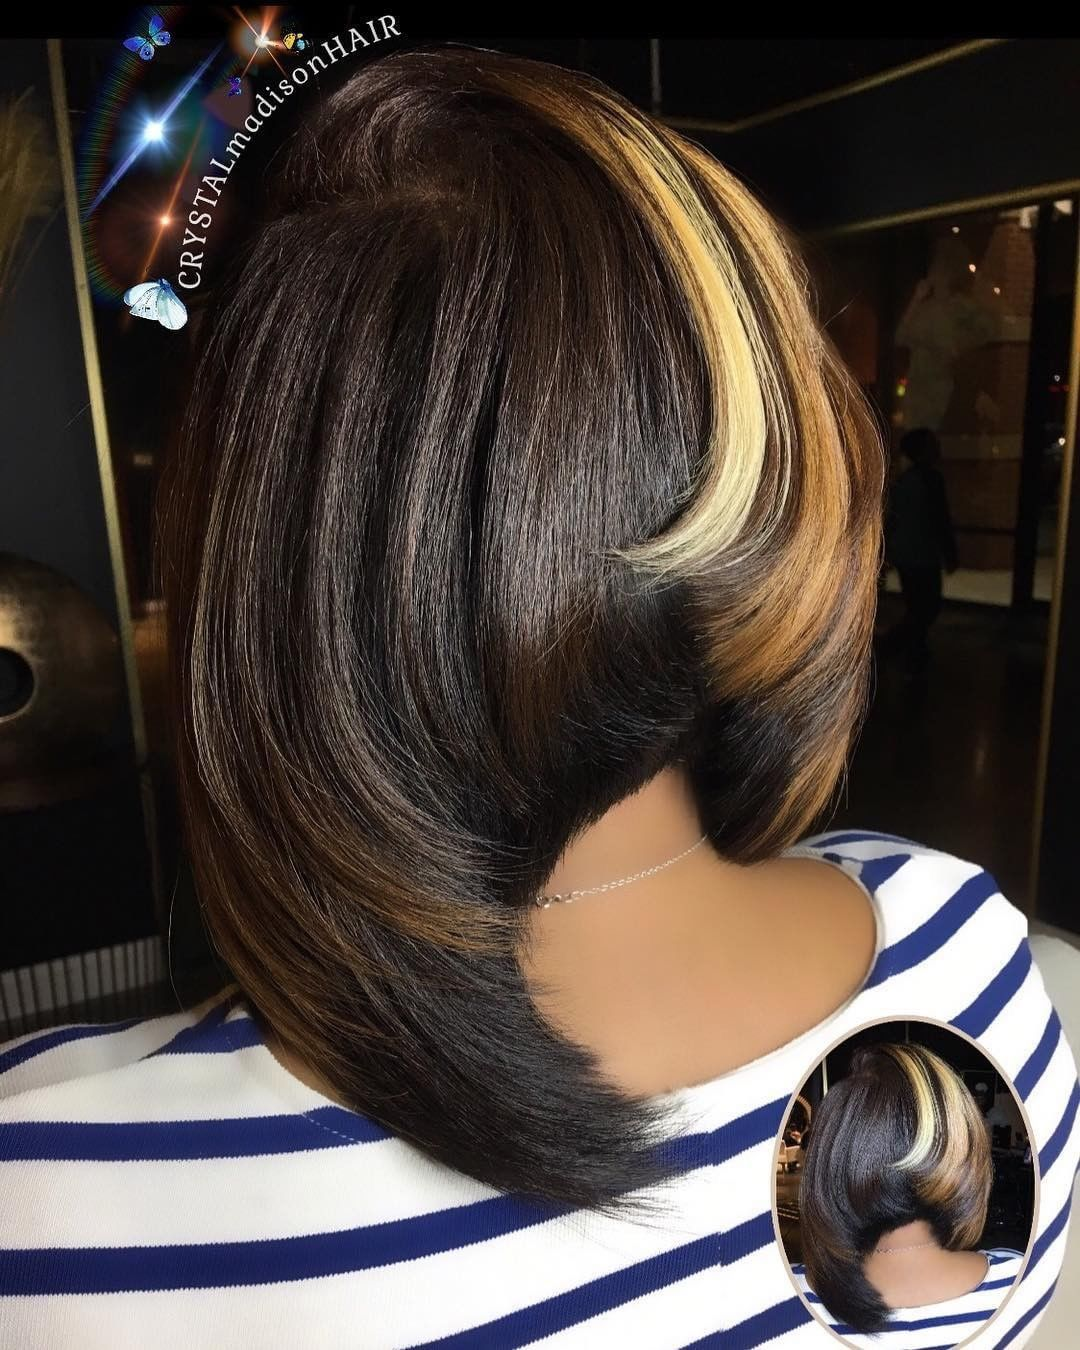 Pin by rae smile on new year hair pinterest hair styles hair